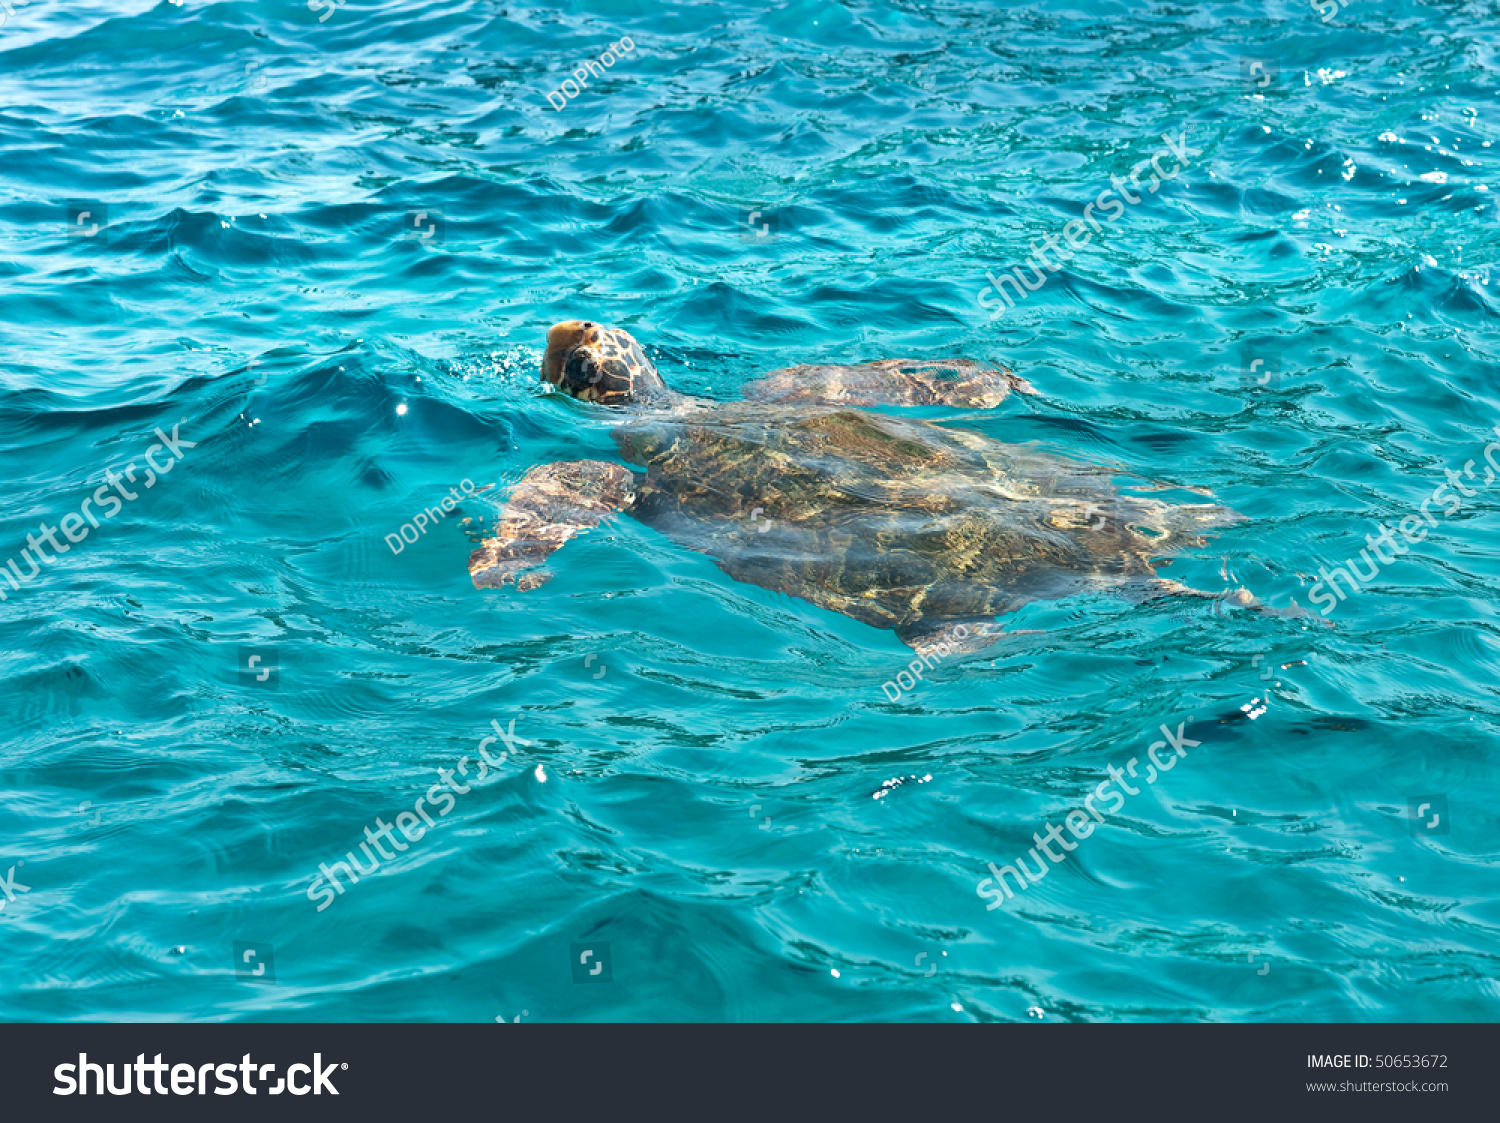 caretta women How popular is caretta caretta is a rare first name for women caretta is an equally rare surname for all people (2000 us demographics.